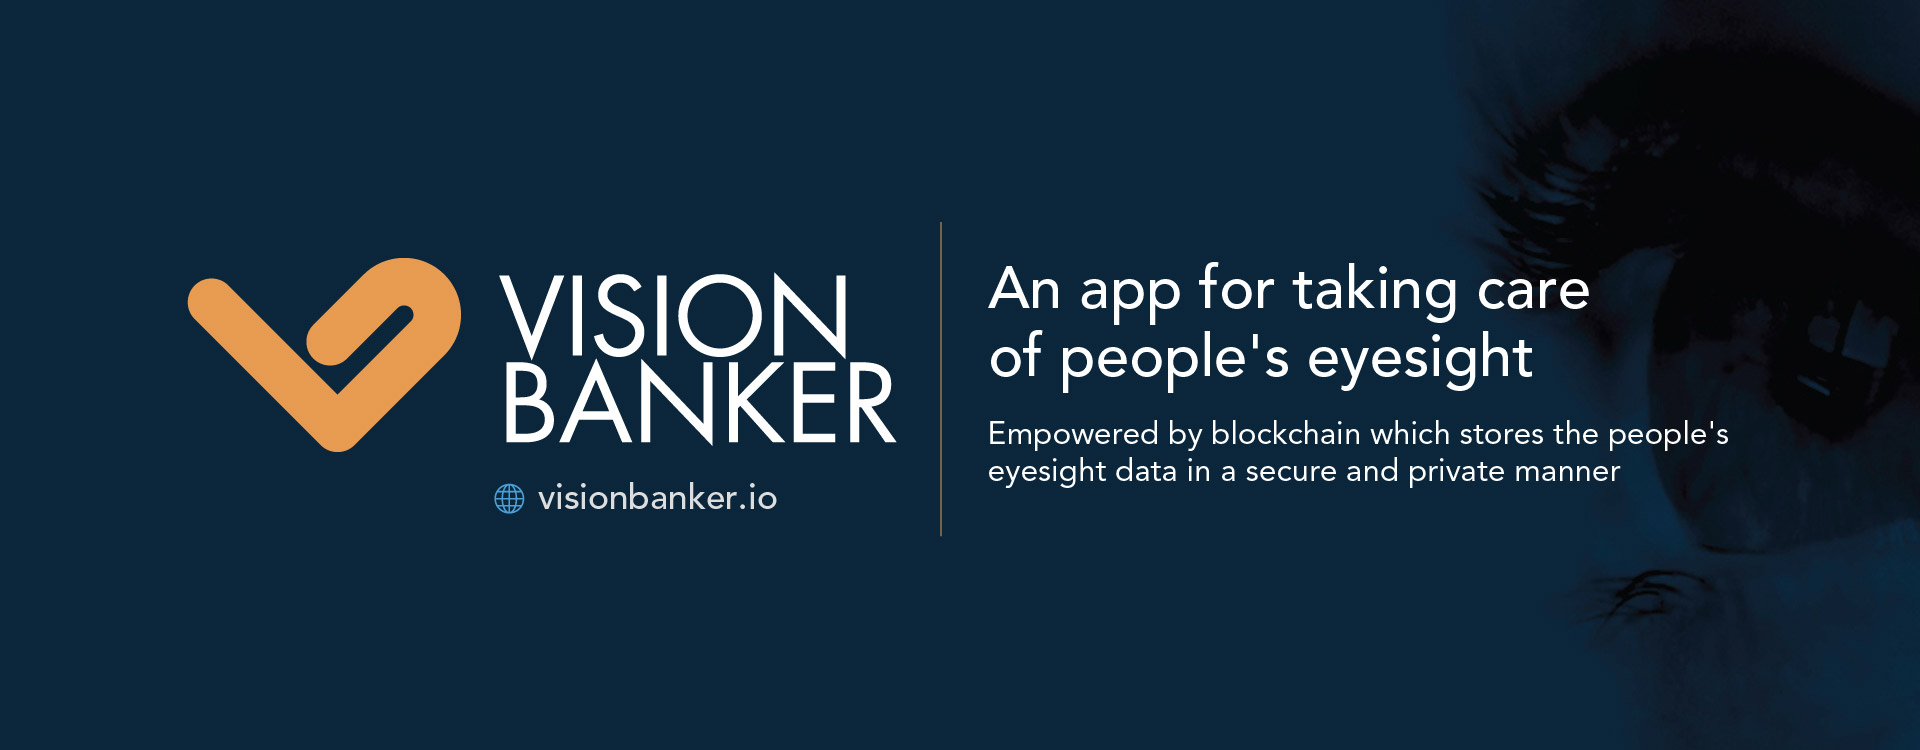 Vision Banker 👓 App for Taking Care of People's Eye